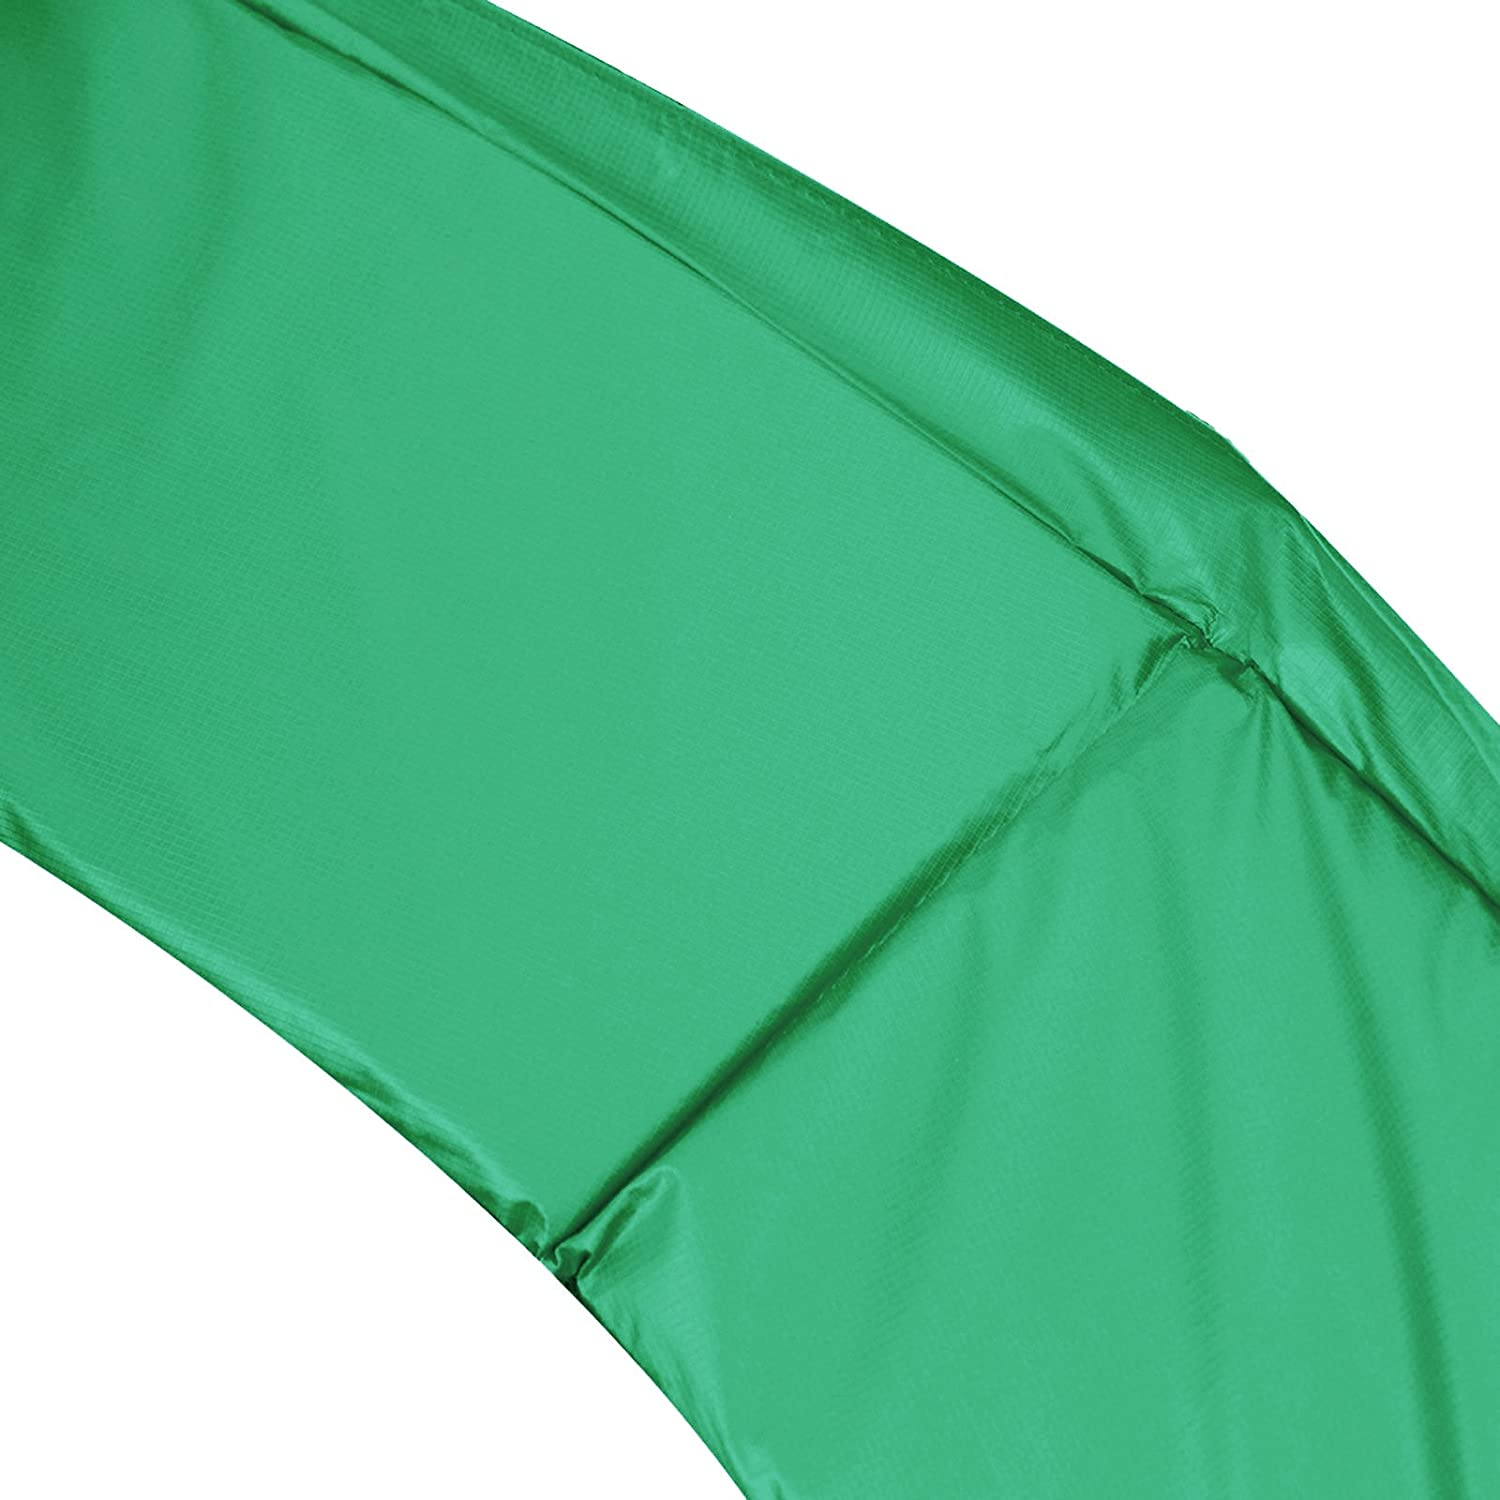 14 Exacme 6180-CP14G Trampoline Replacement Safety Pad Frame Spring Round Cover Green